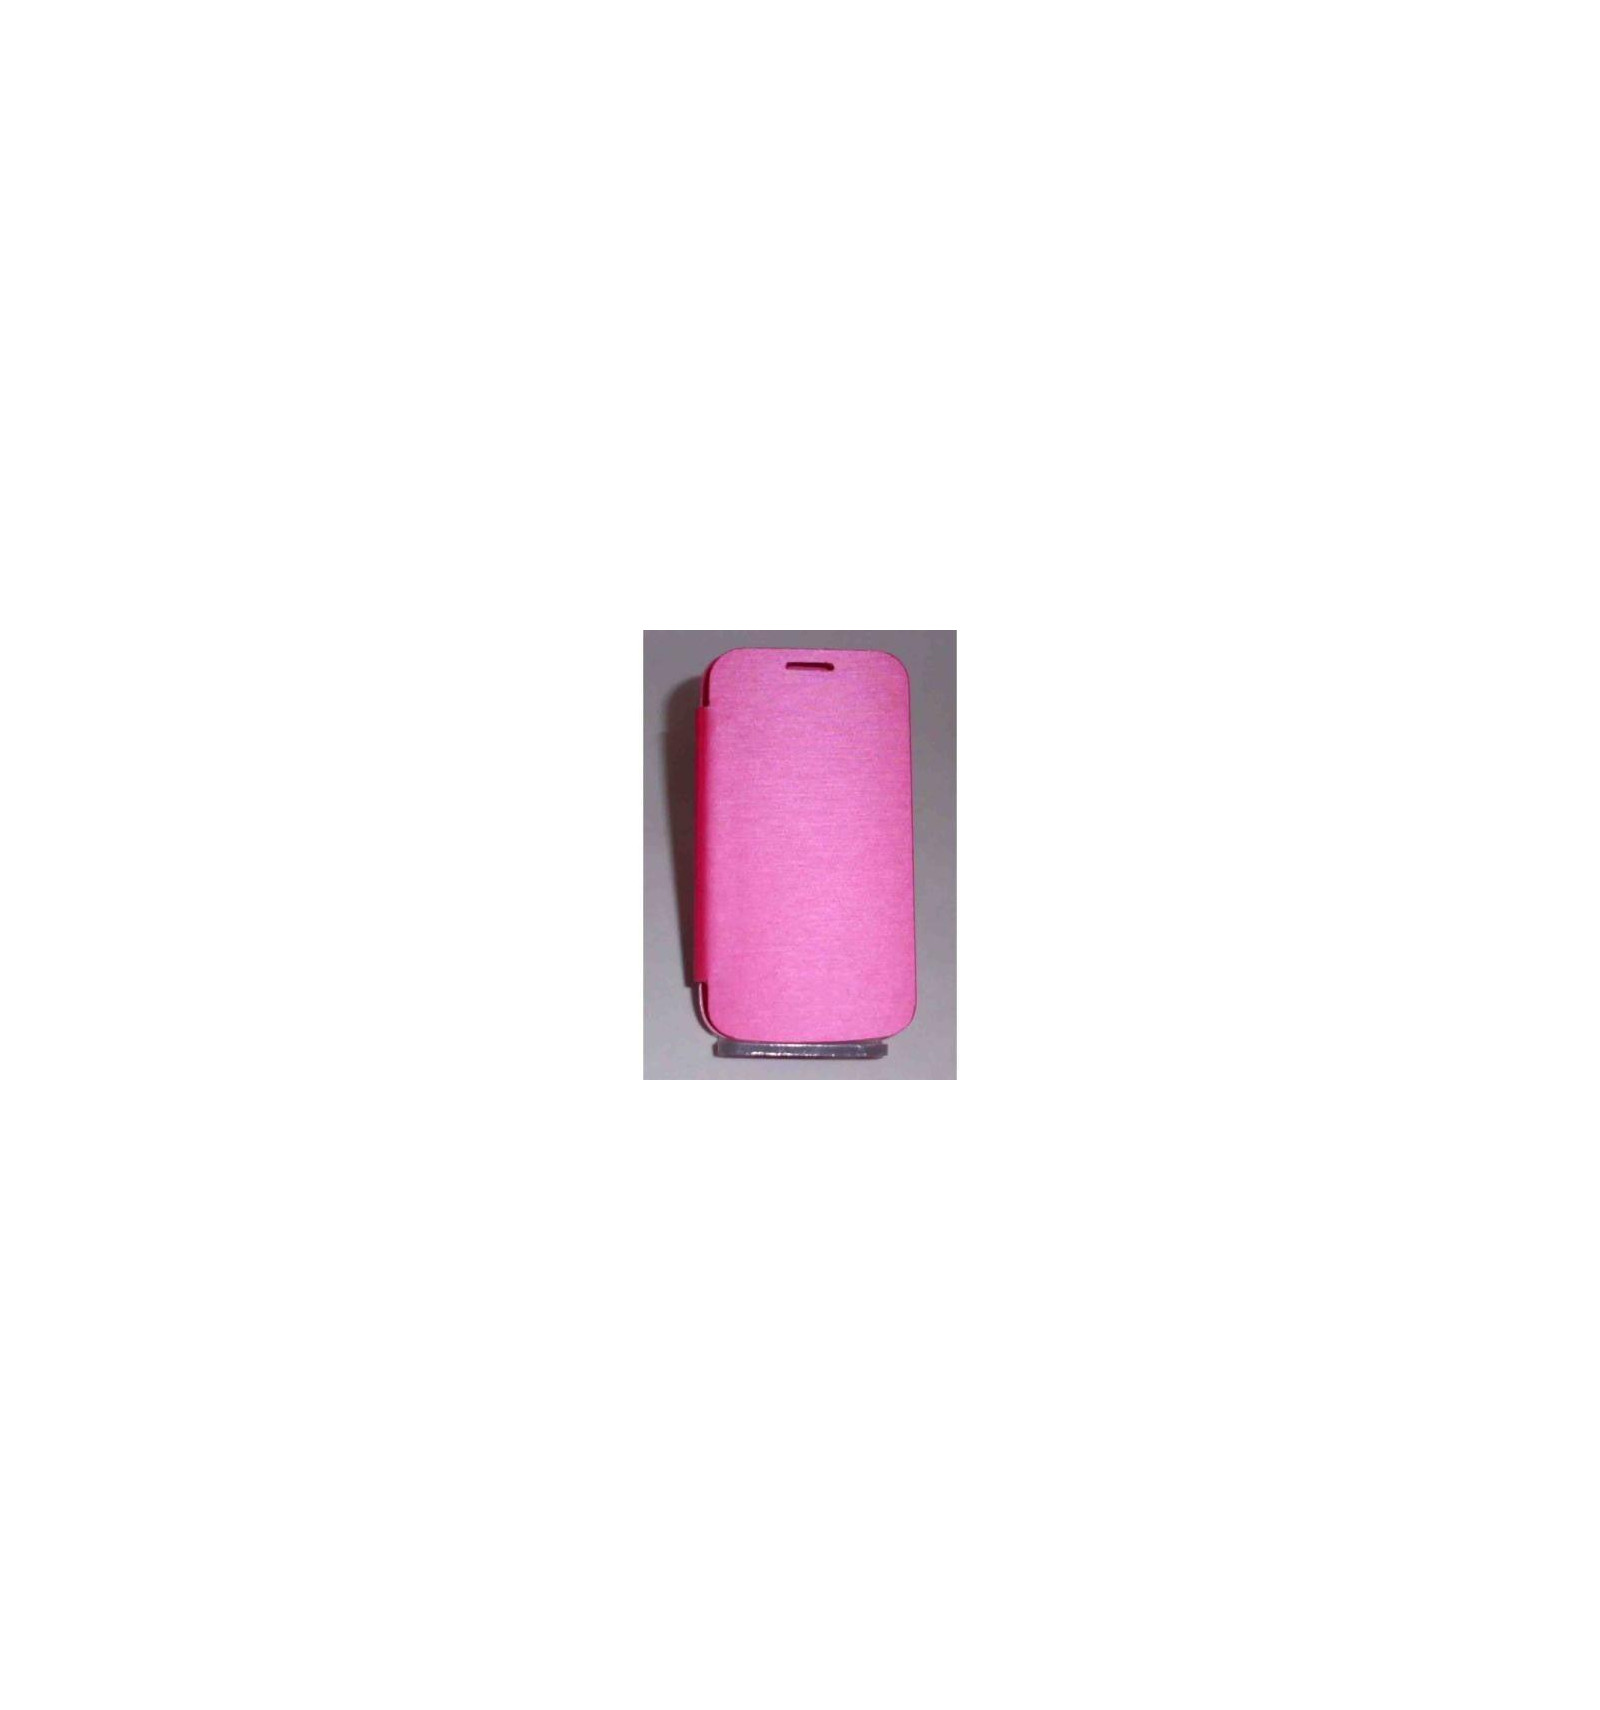 samsung galaxy ace 3 gt s7270 pink flip cover